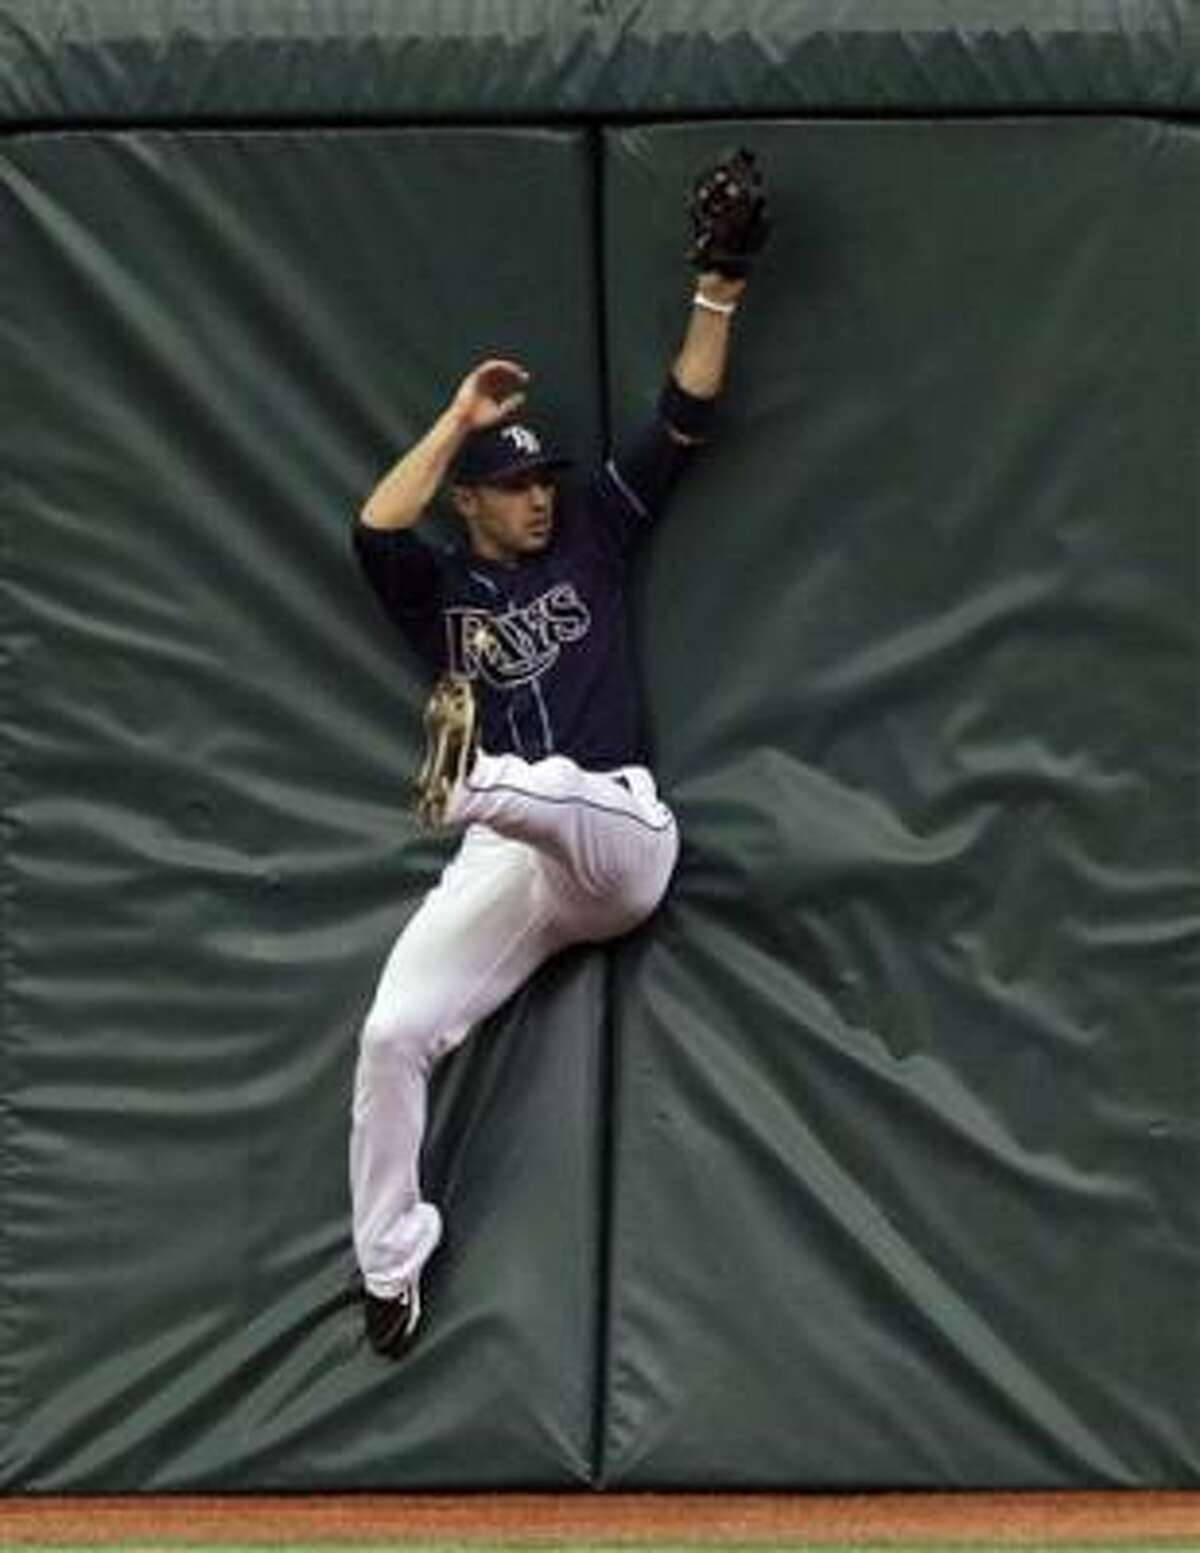 Tampa Bay Rays right fielder Sean Rodriguez crashes into the wall after robbing Texas Rangers' Julio Borbon of an extra base hit Wednesday, Aug. 18 in St. Petersburg, Fla.